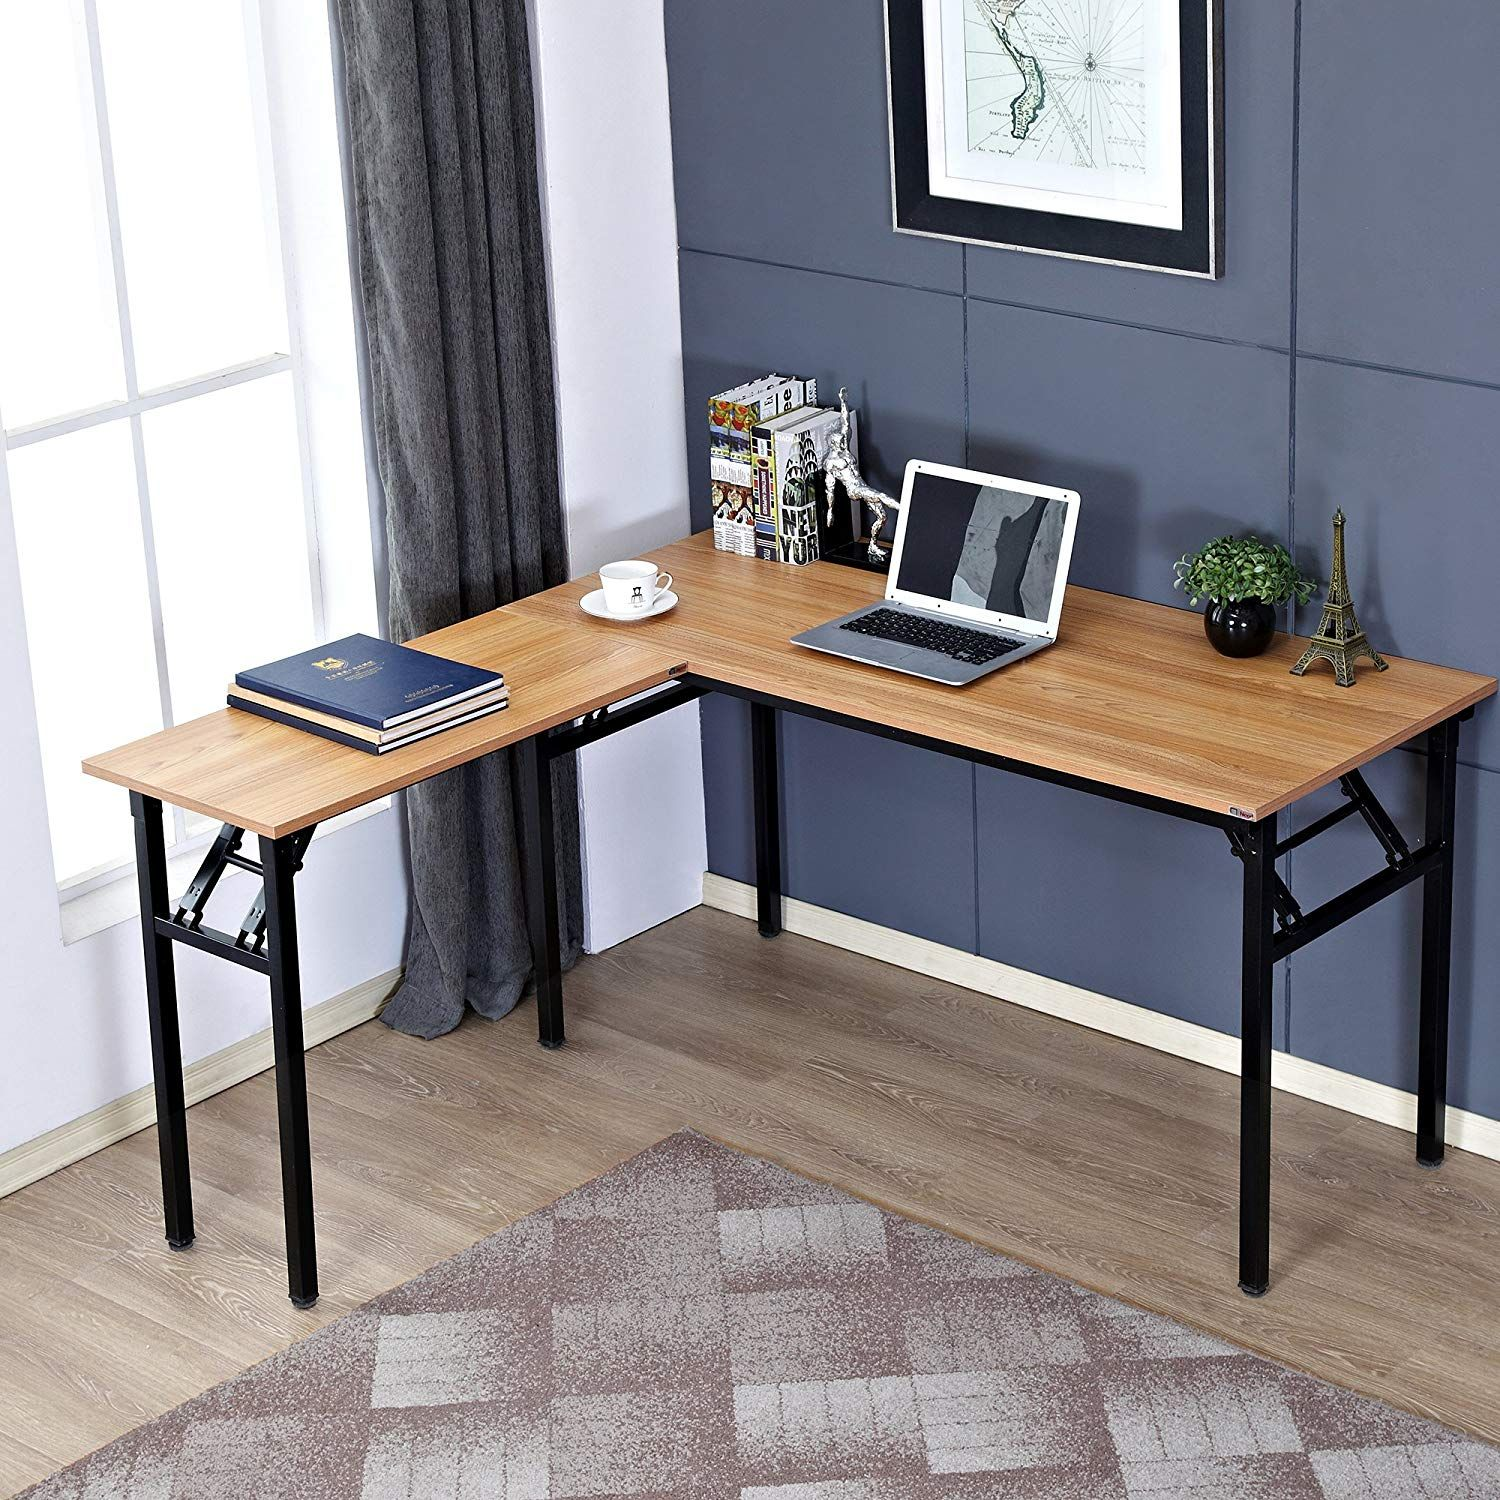 "Need 55"" x 55"" LShaped Folding Computer Desk"